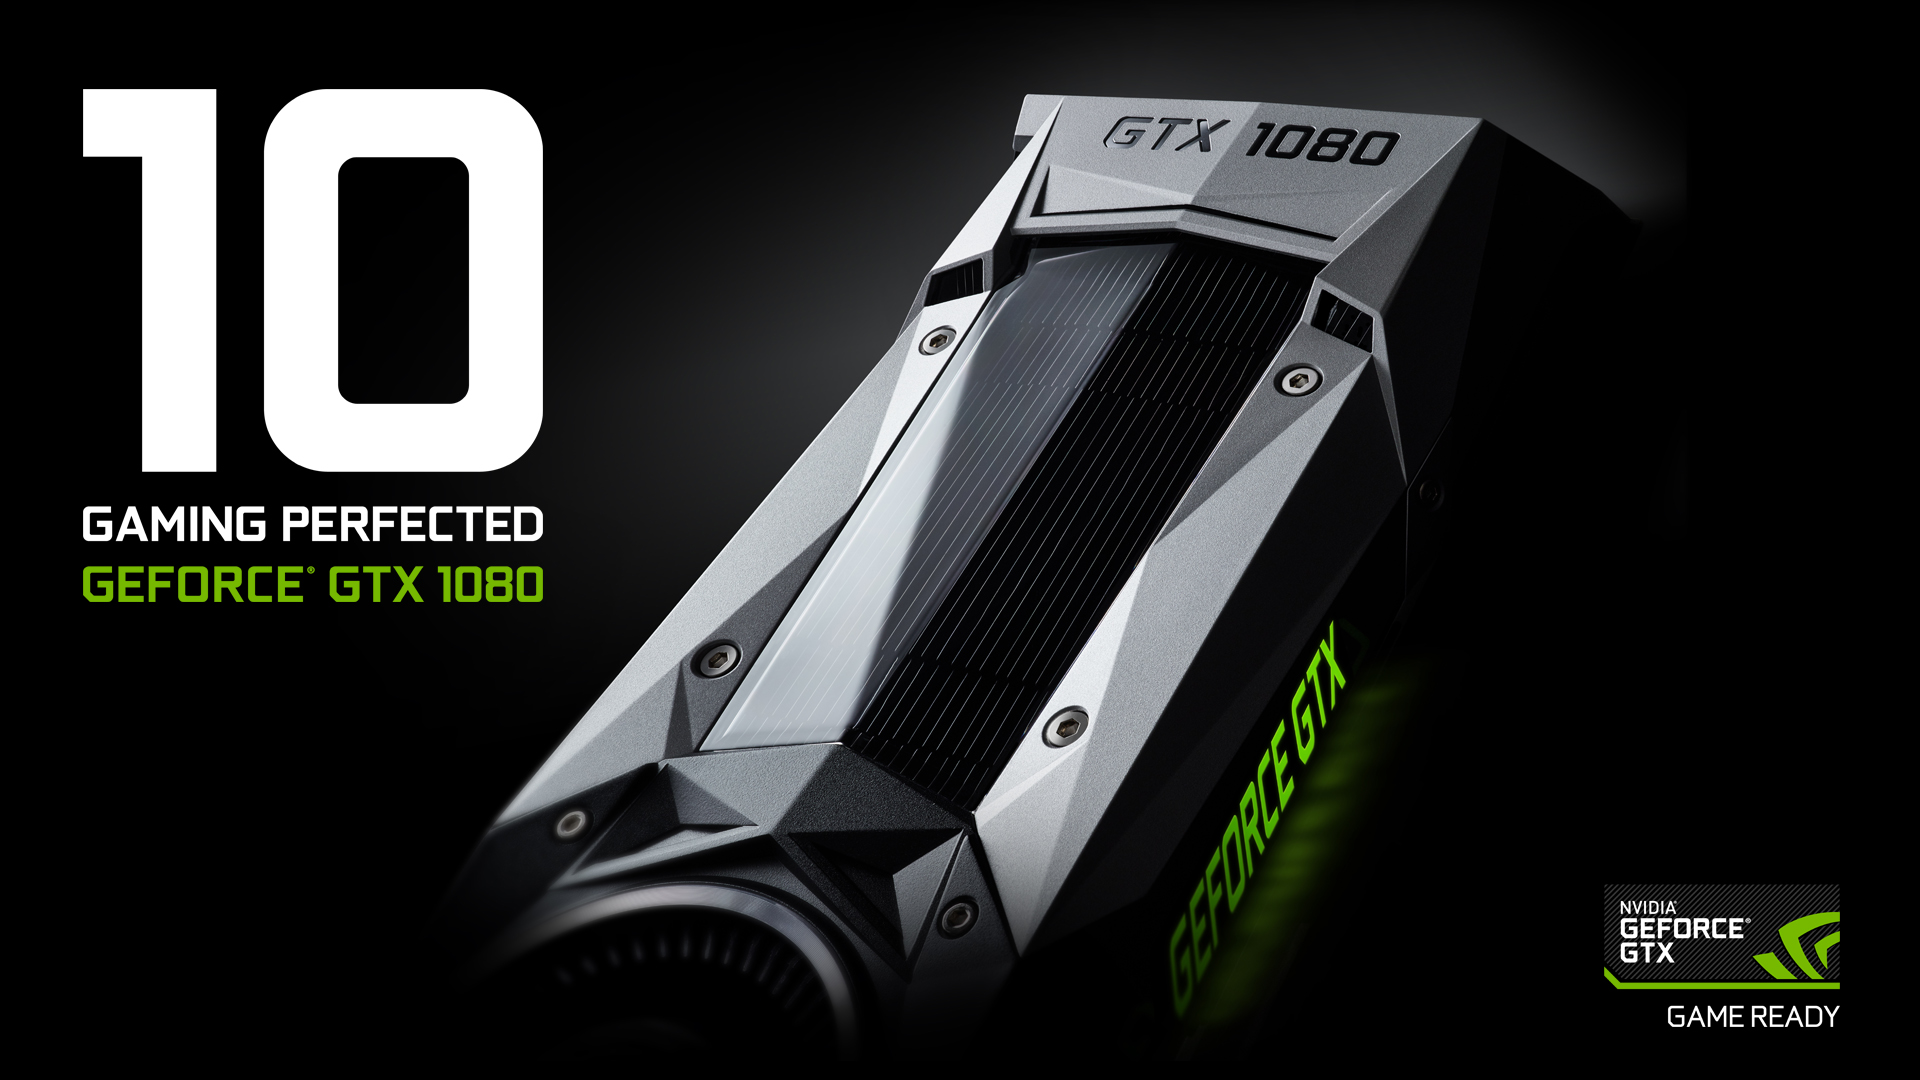 nvidia-geforce-gtx-1080-key-visual